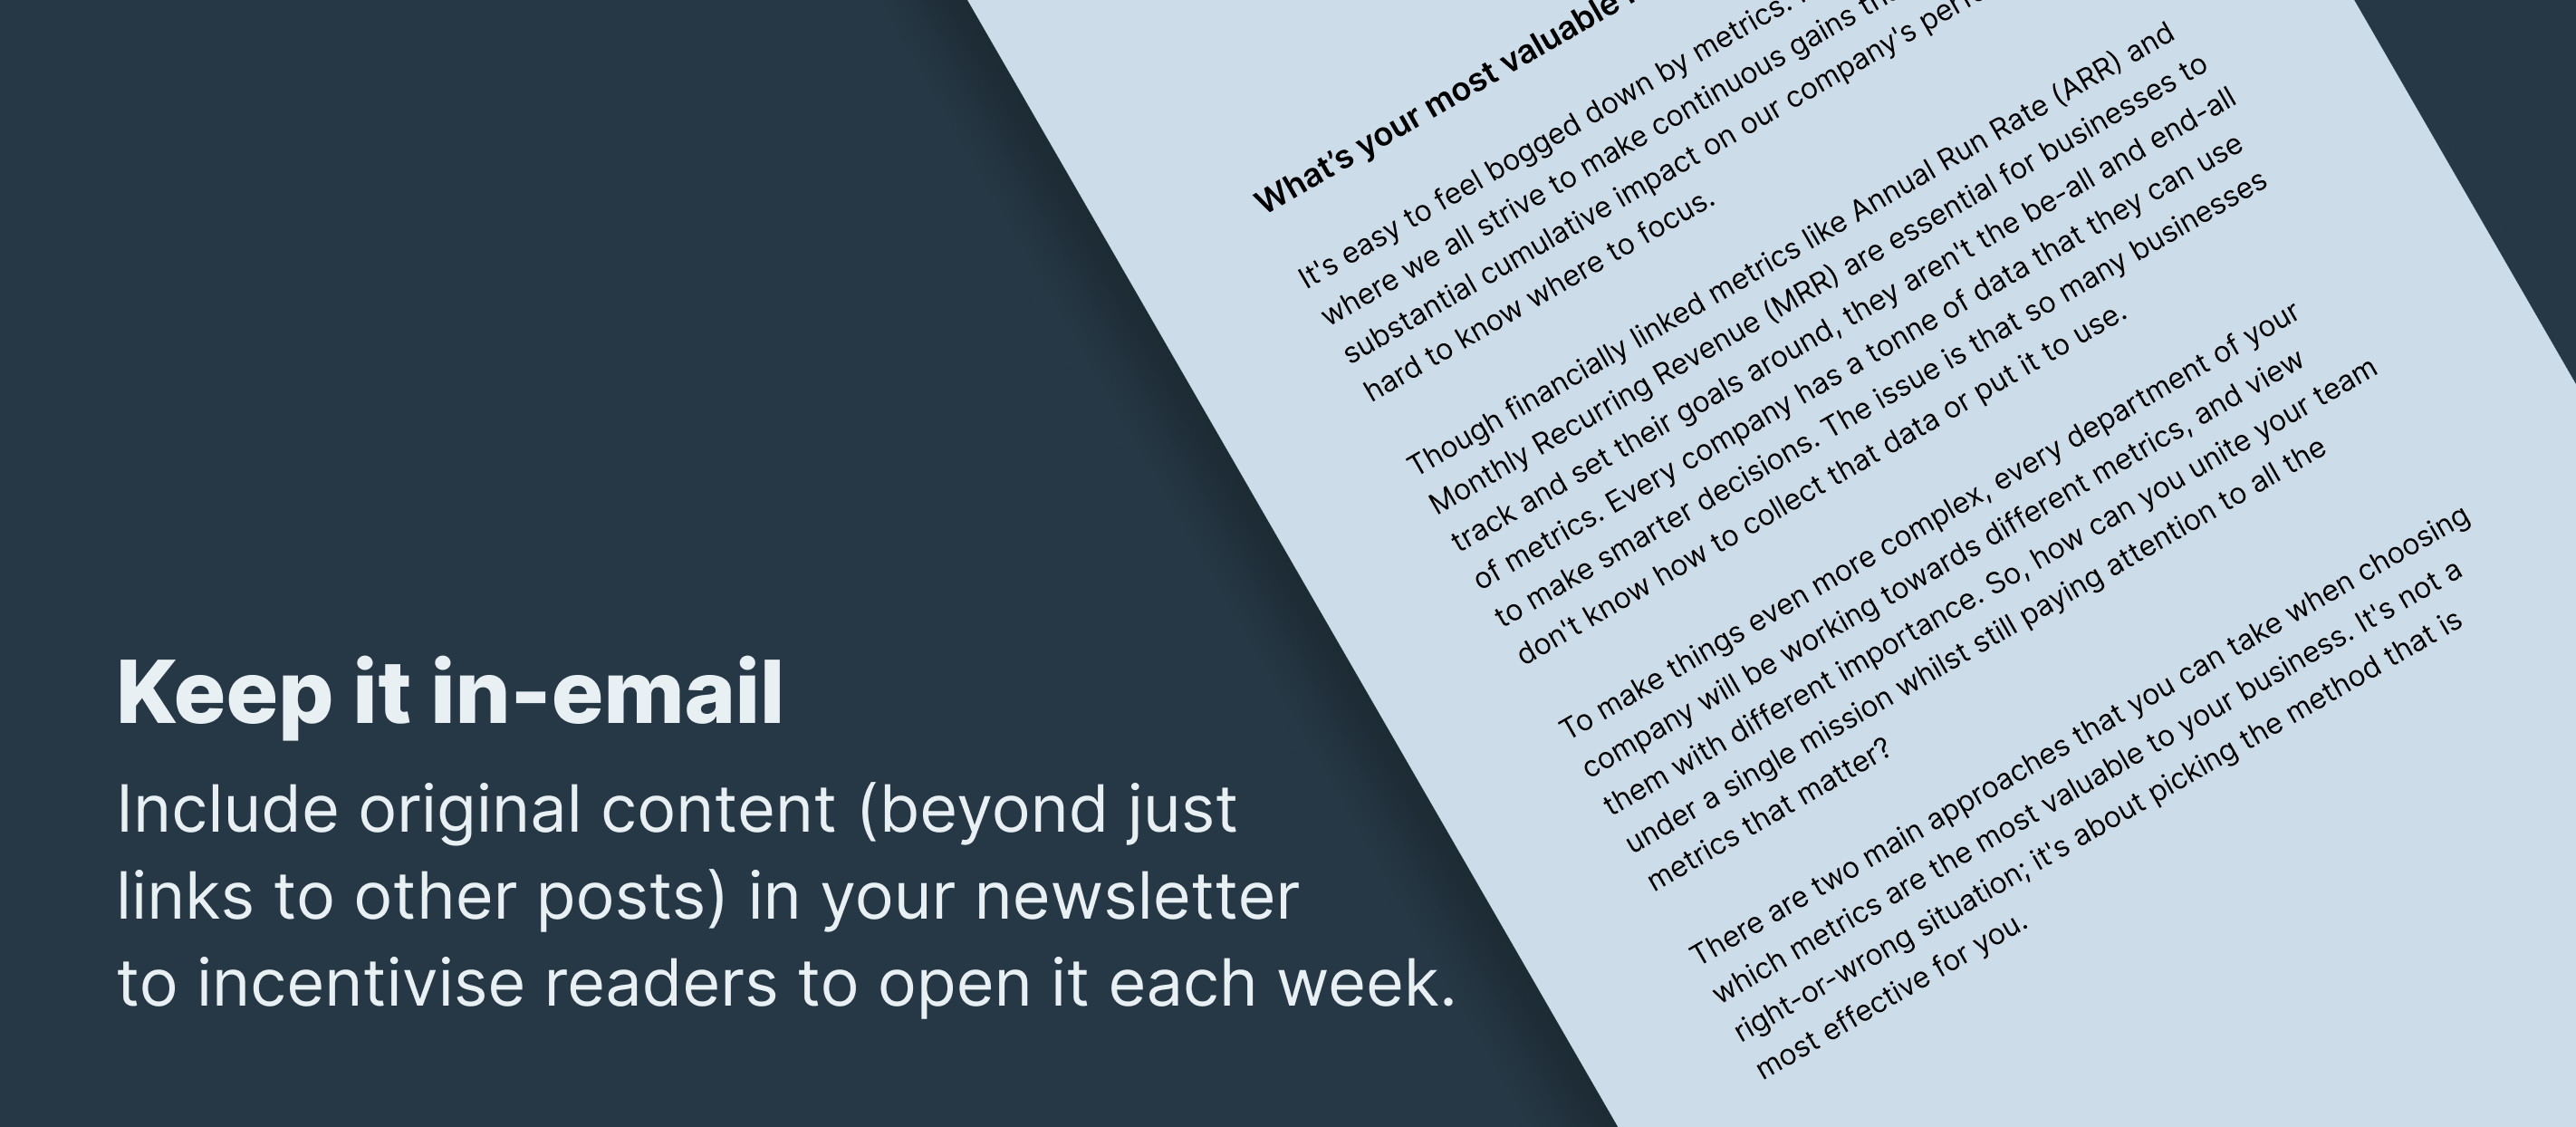 prioritise in-email content